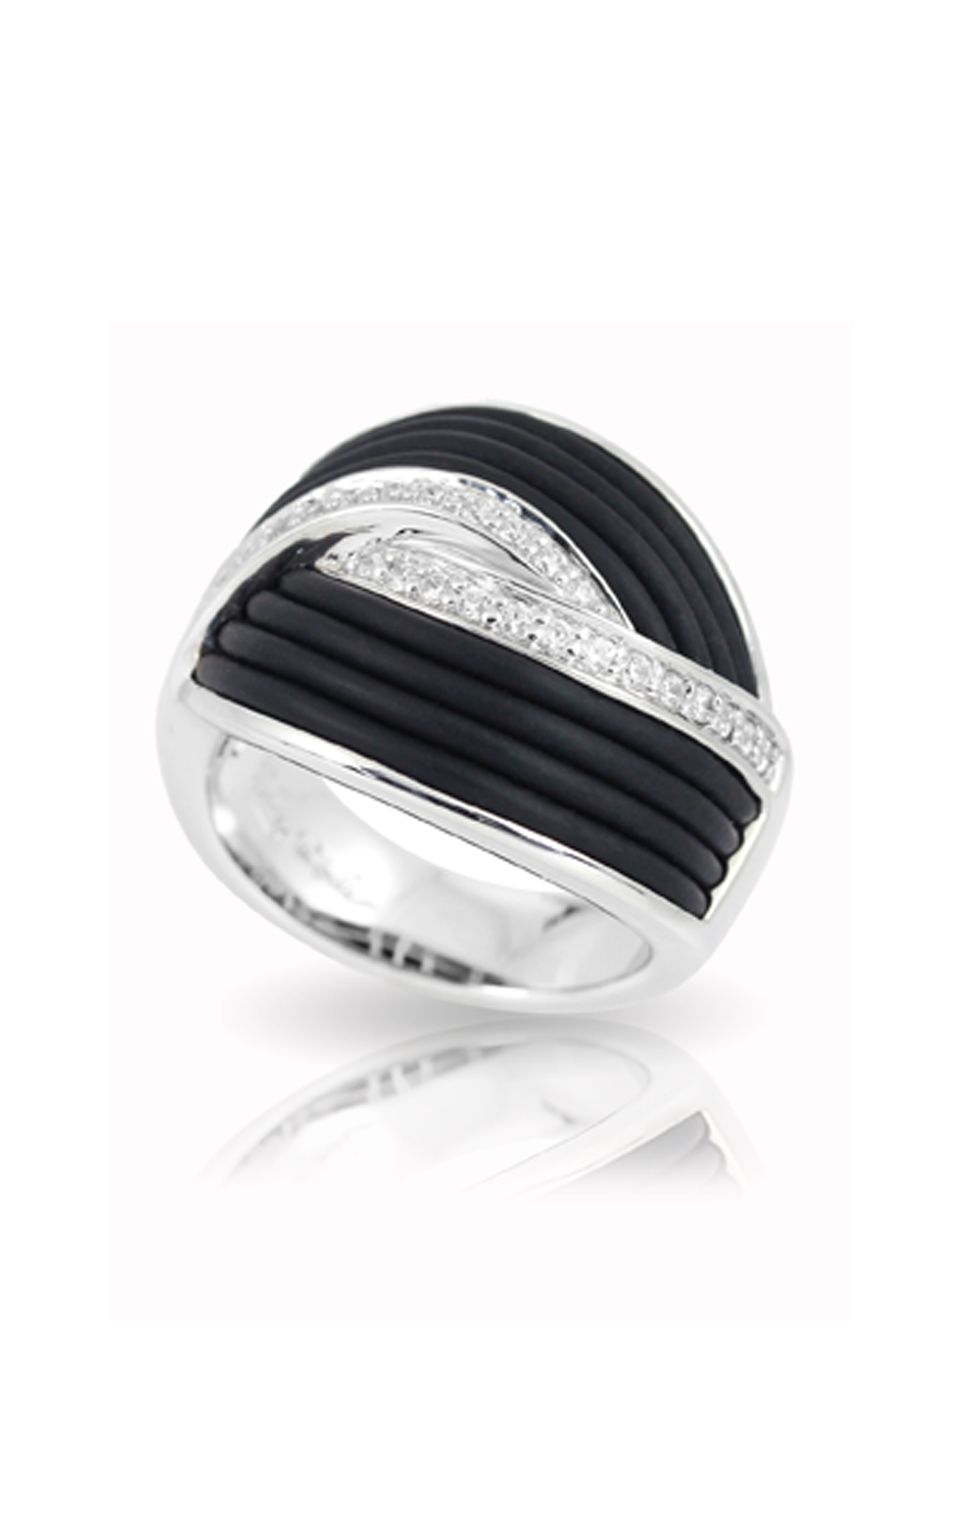 Belle Etoile Eterno Black Ring 01051220501-9 product image